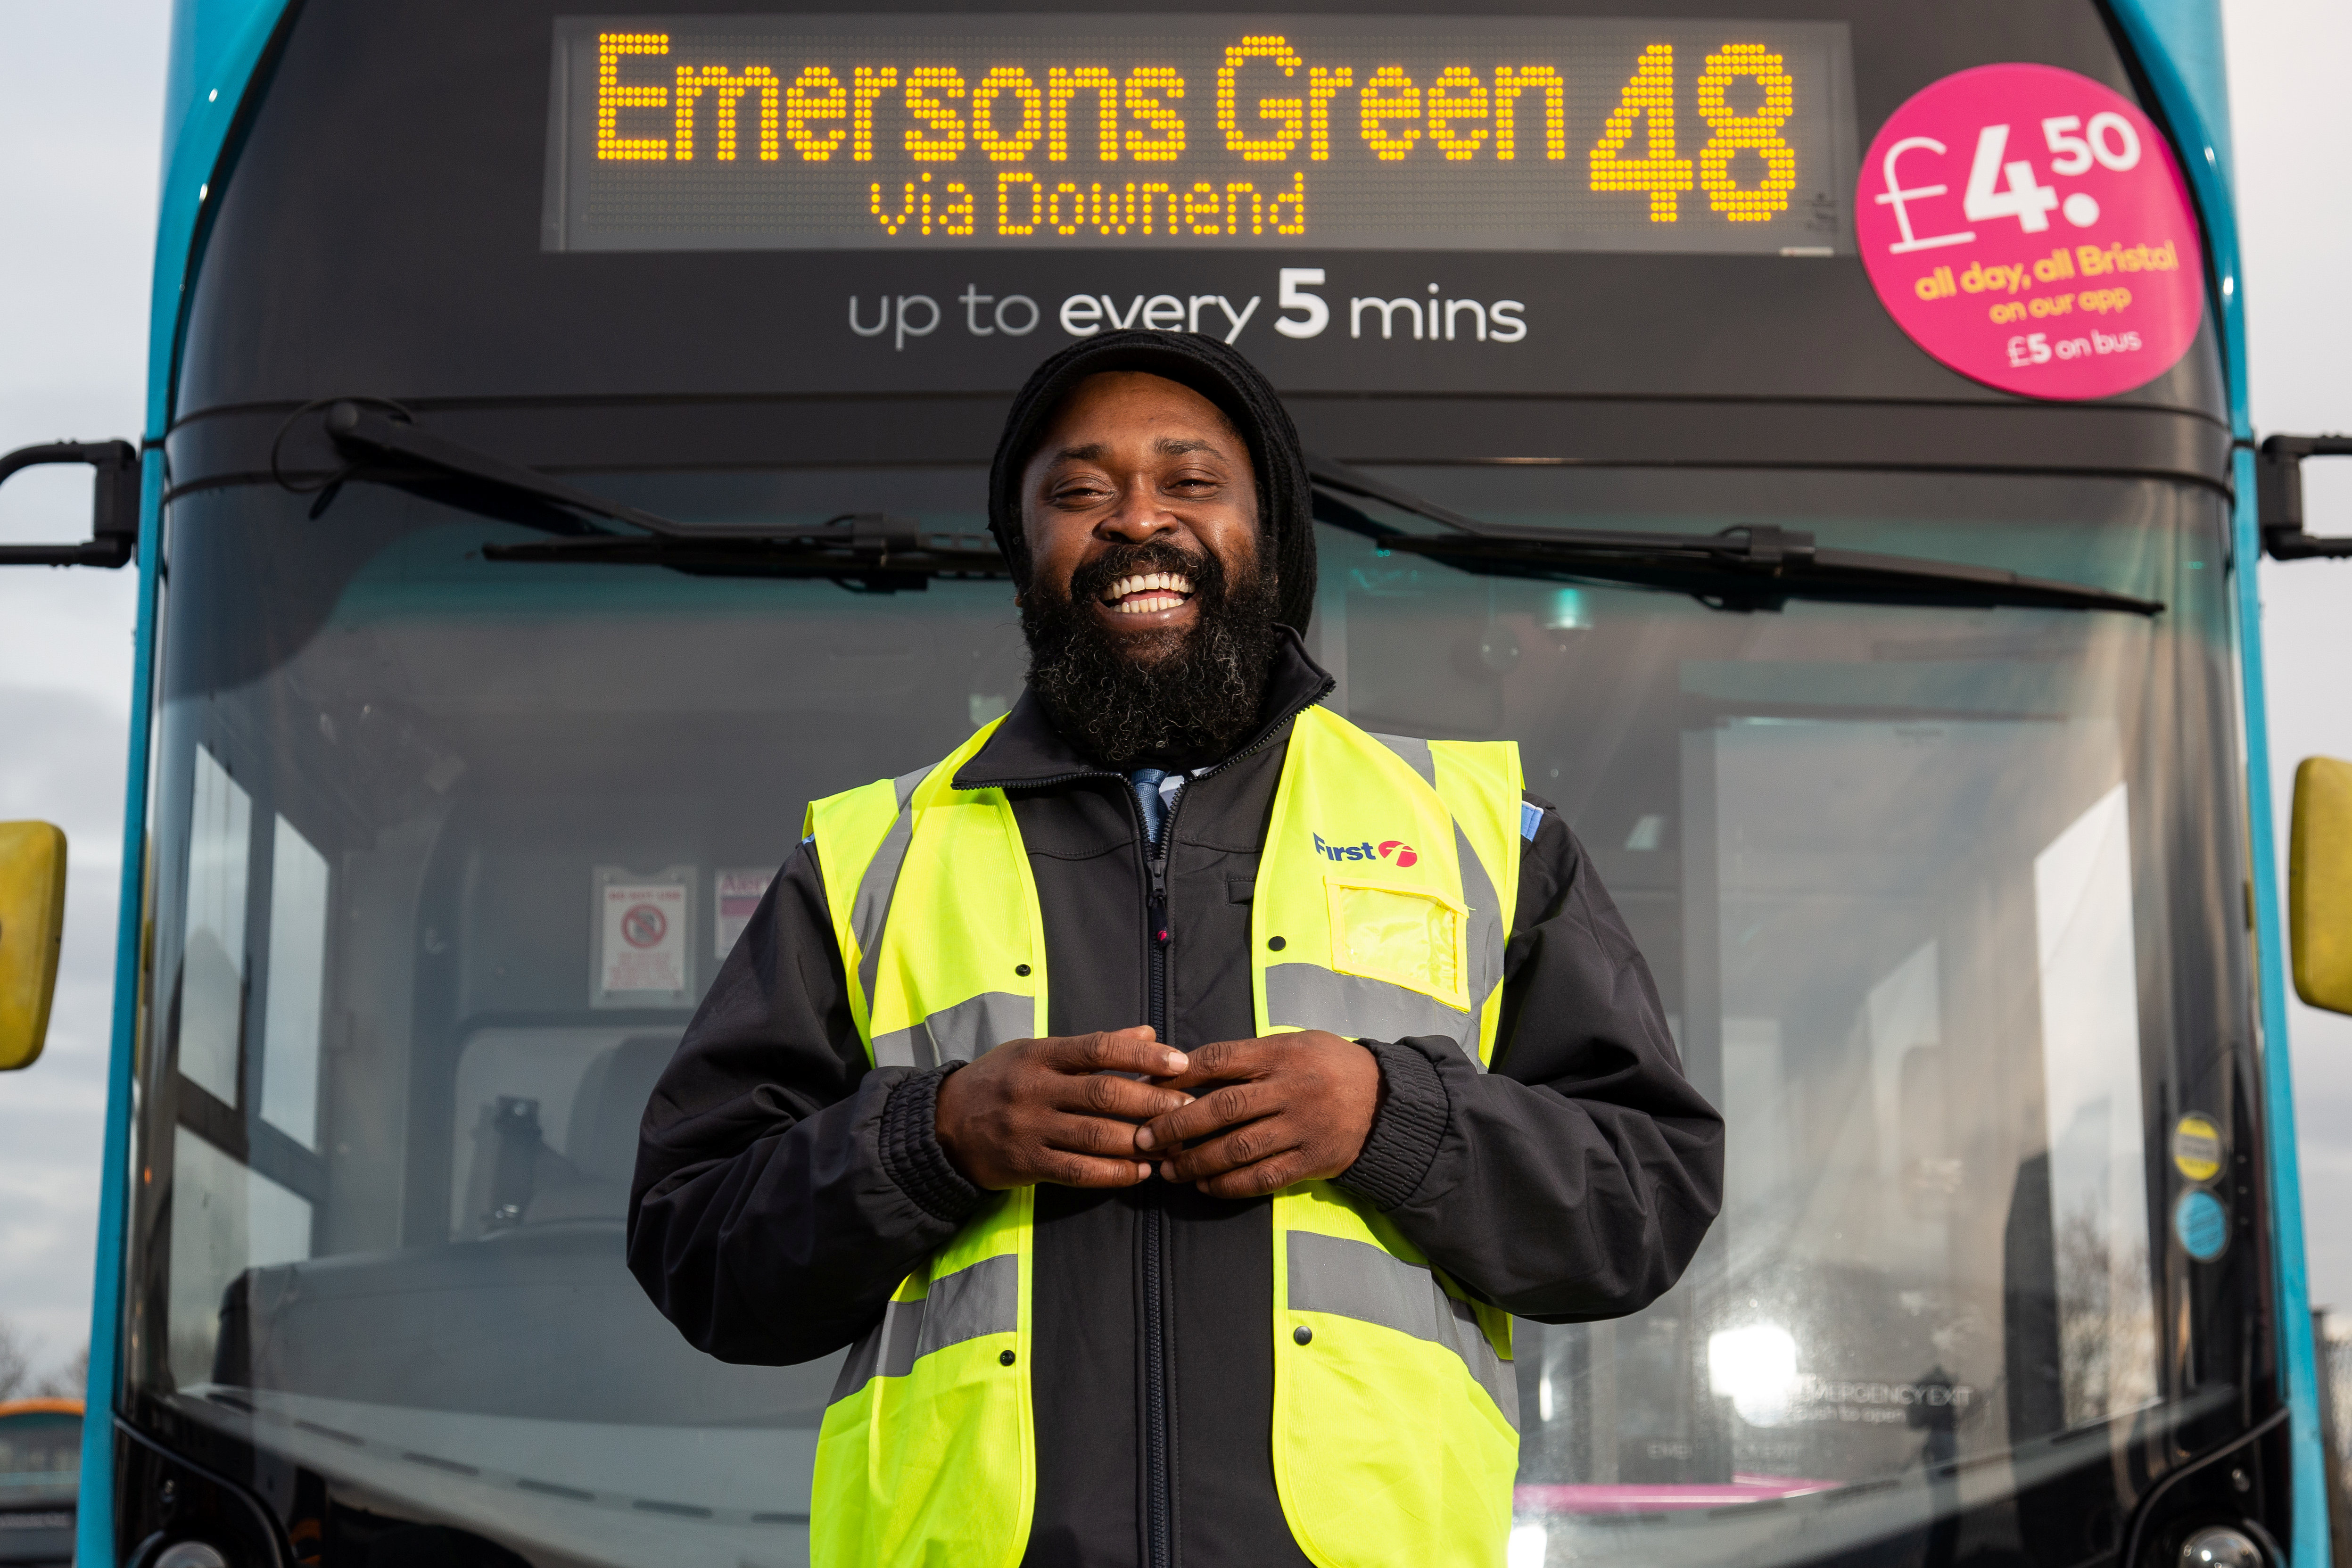 A bus driver who has spent years singing to his passengers is now driving forward as a music star - and has released his own album. Tuneful Roger Brady, 41, has spent over a decade entertaining commuters and shoppers with his reggae songs. He can be regularly seen and heard singing a tune in the cab of the 48/49 service as he drives around Bristol.Roger loves belting out one of his tunes which are all inspired by the stories of the people he encounters on his journeys. Now Roger - under the stage name Jah Garvey - has recorded an upcoming album titled 'Girls Dem'.